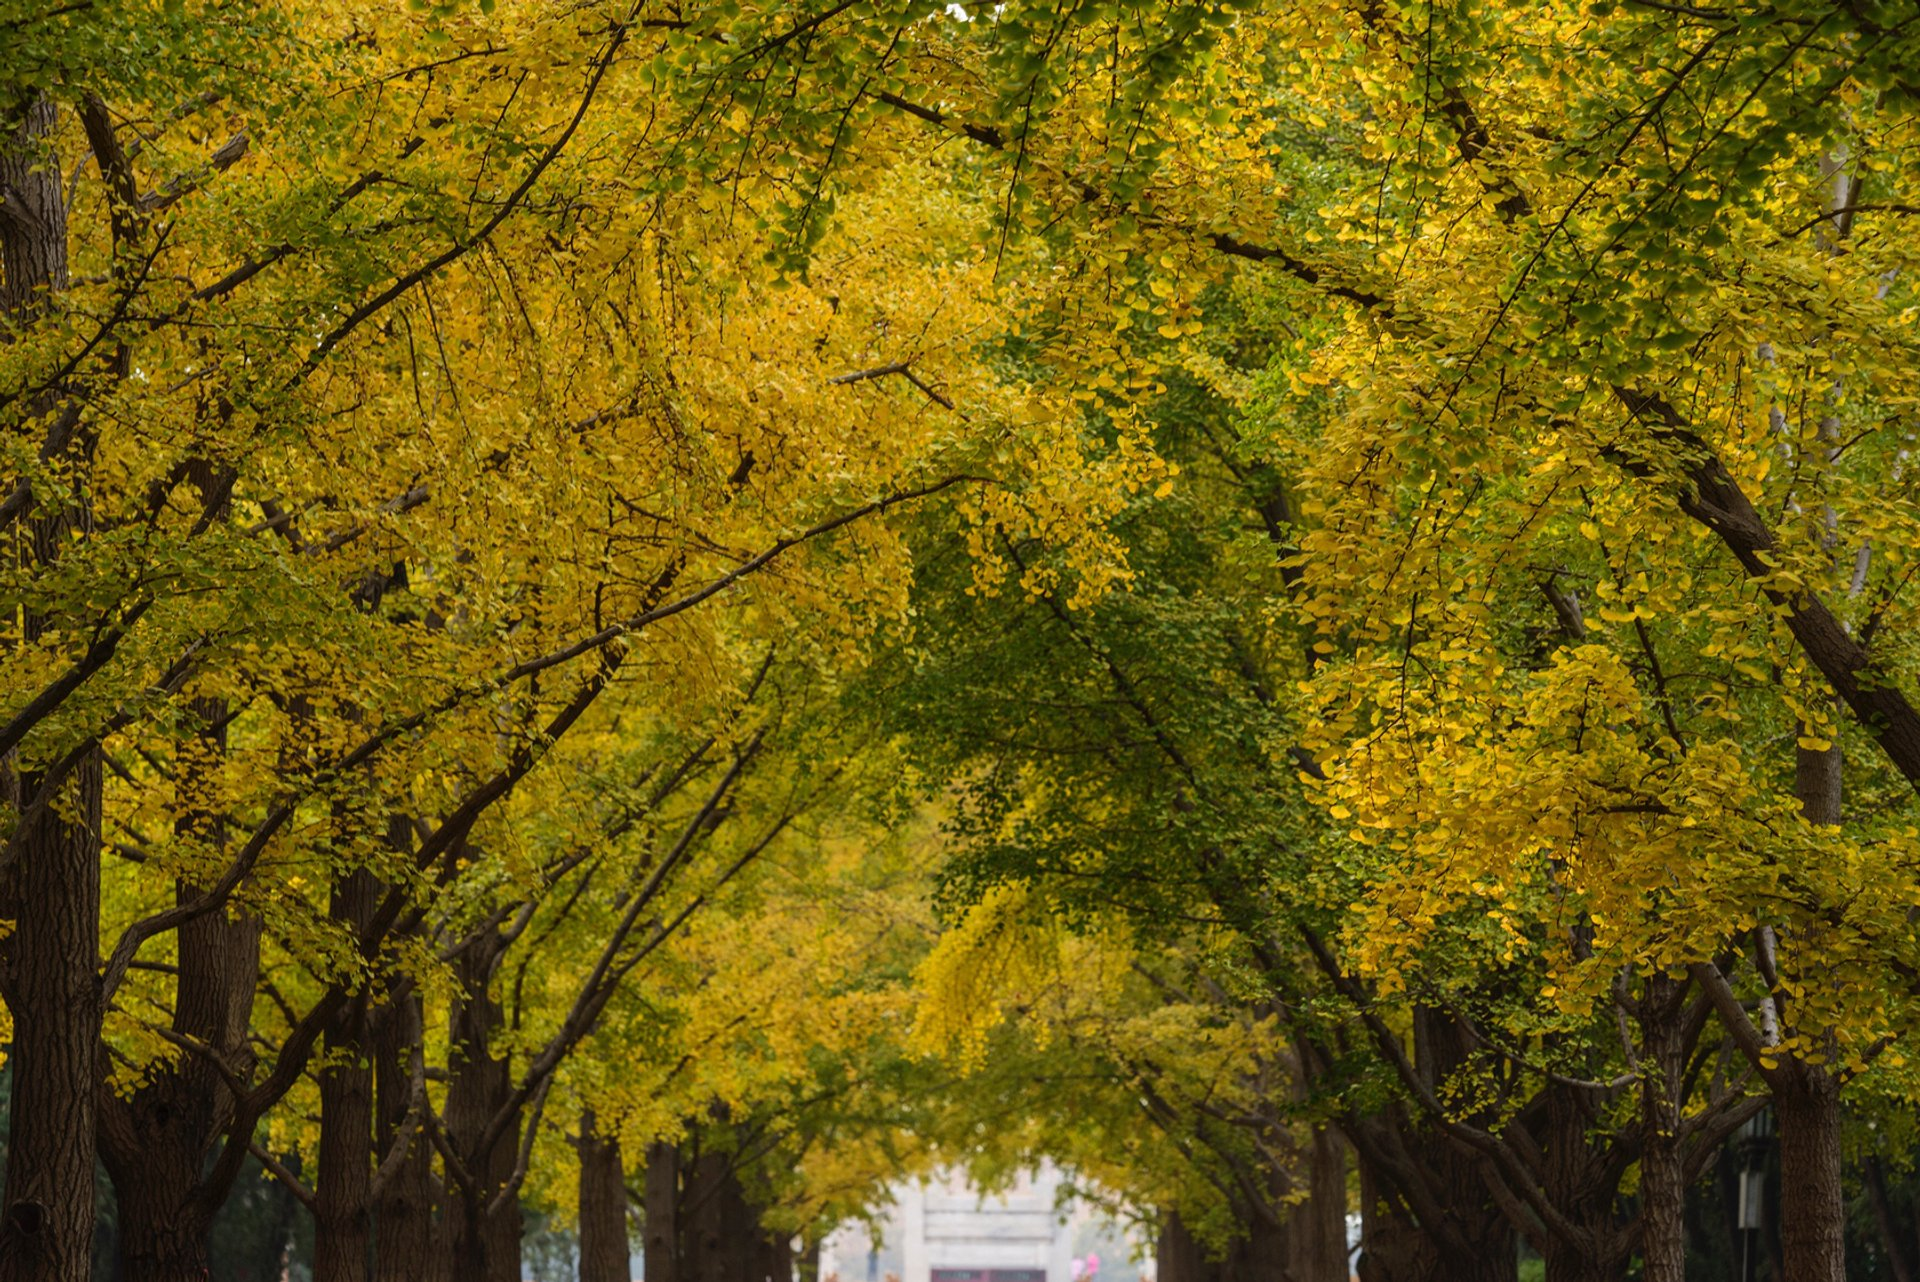 Ginkgo at Ditan Park on October 30 2019